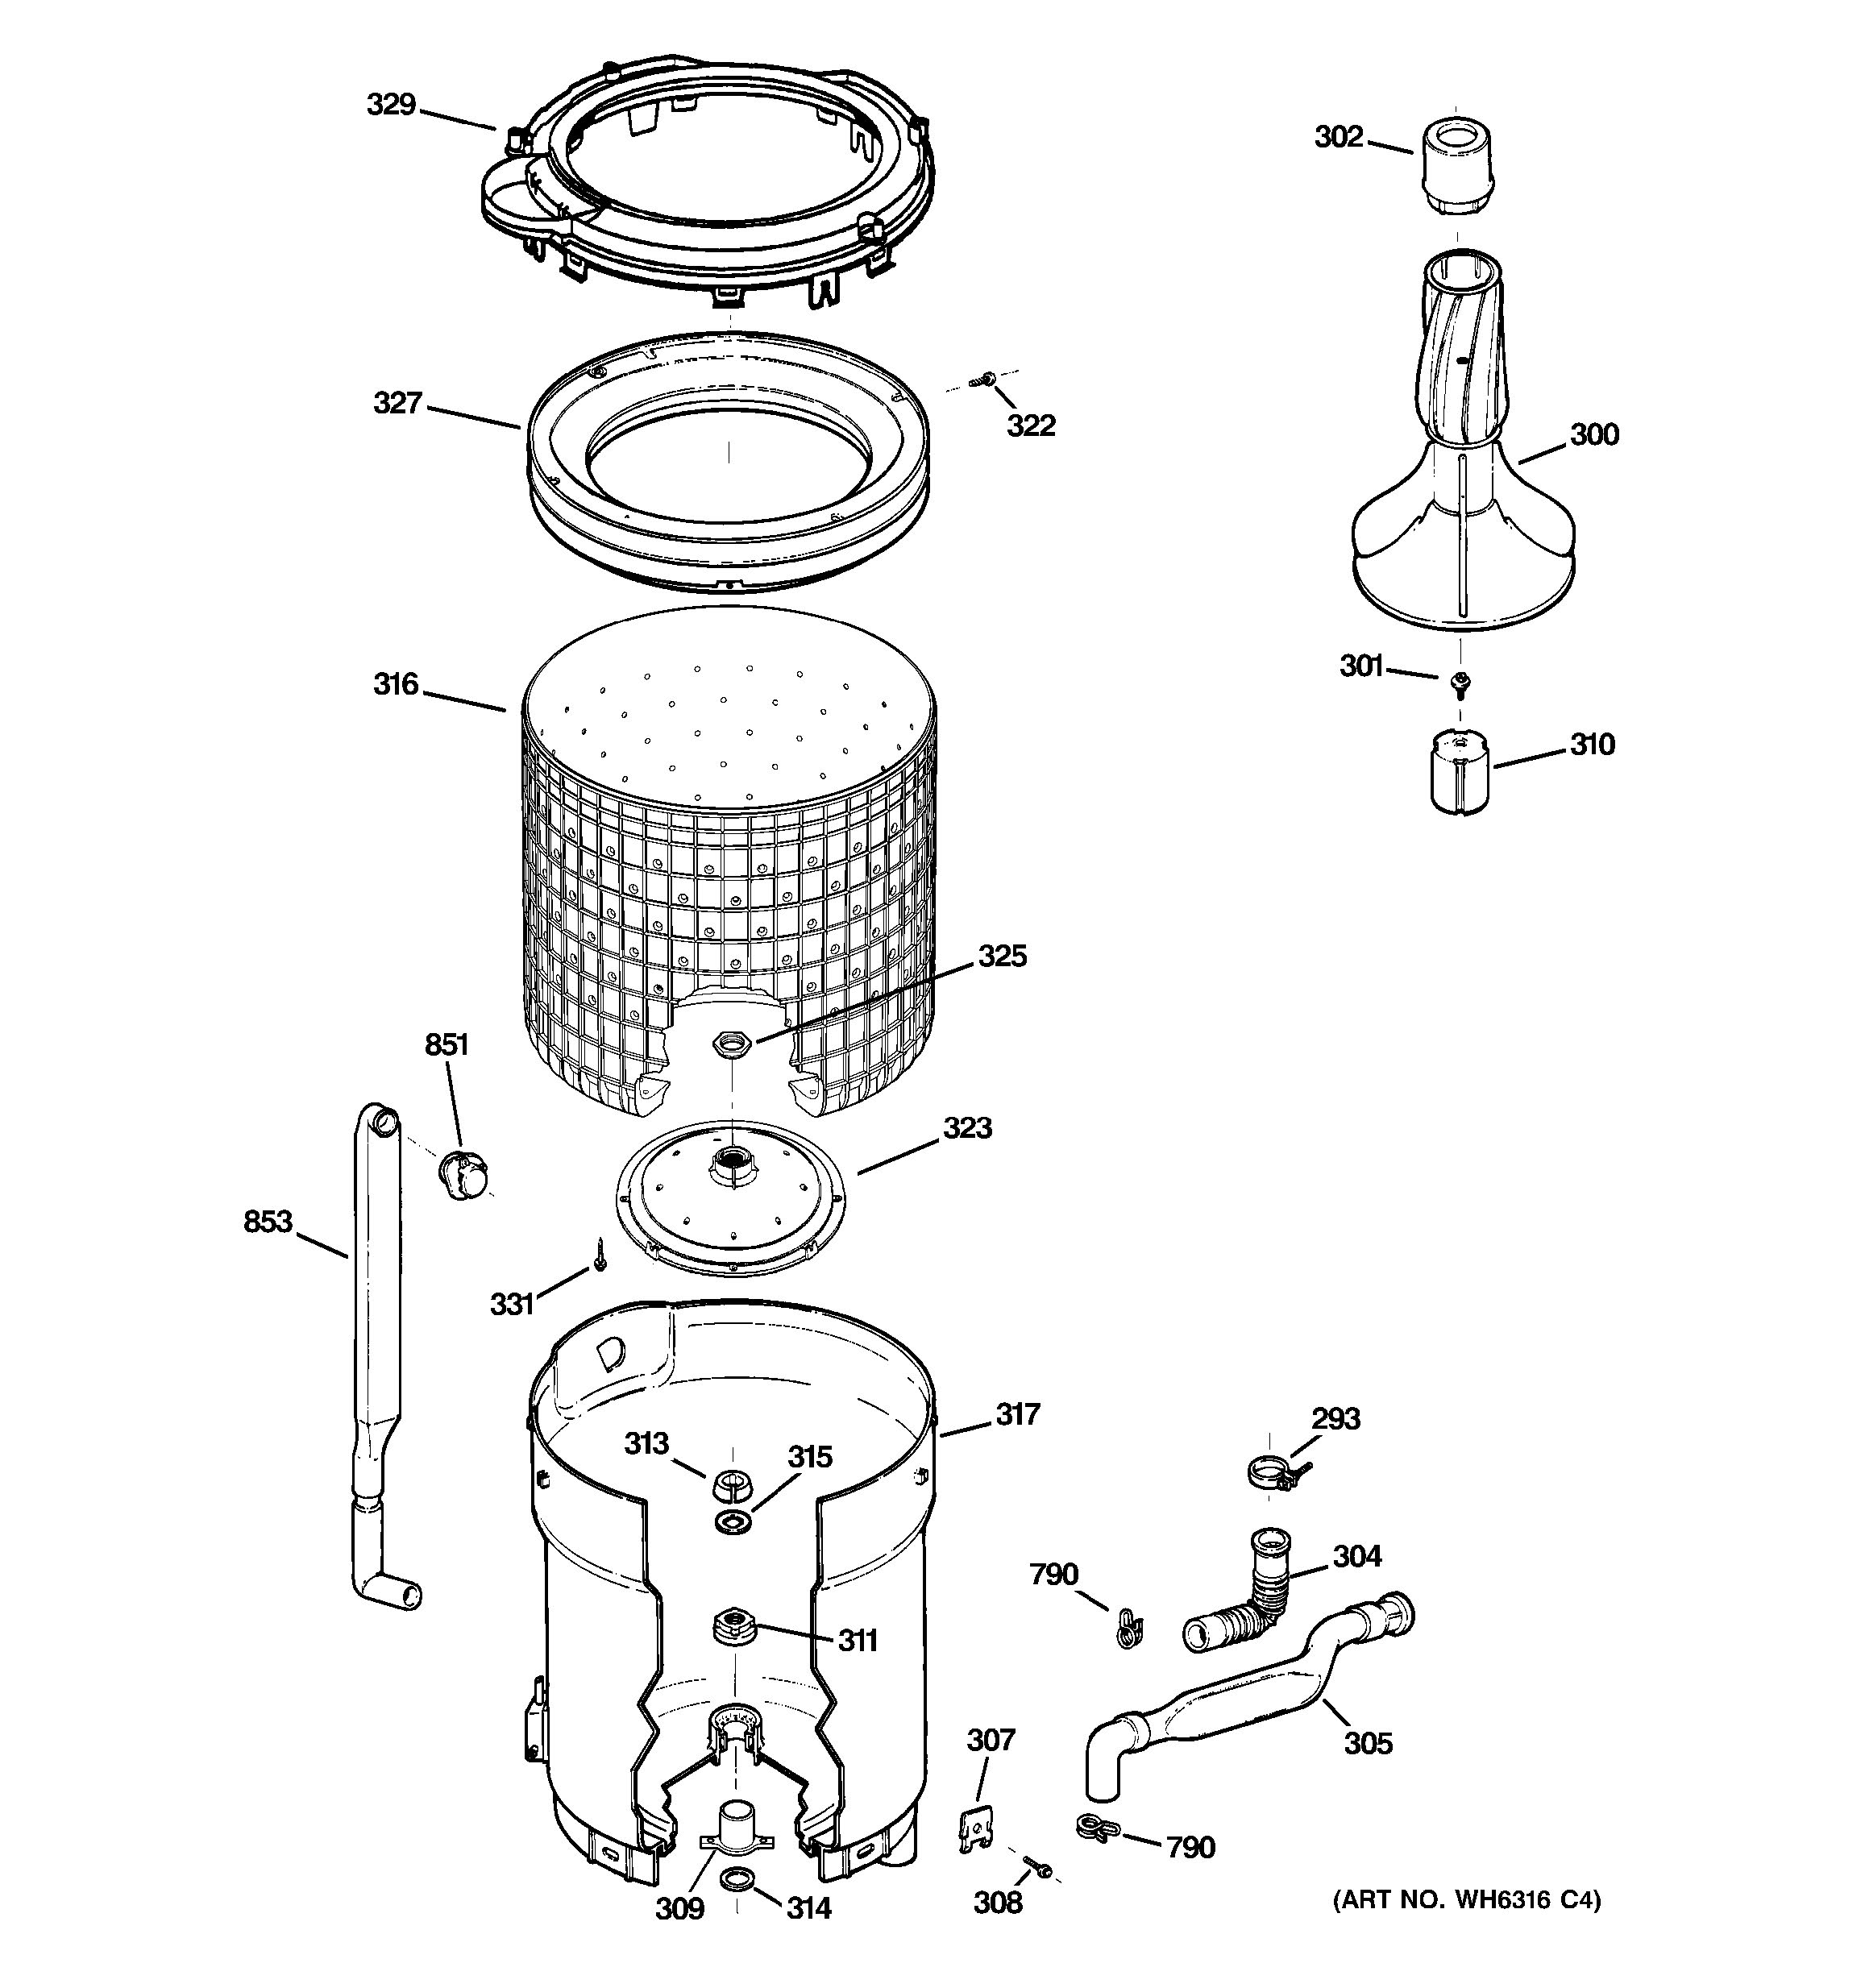 Assembly View For Tub Basket Amp Agitator